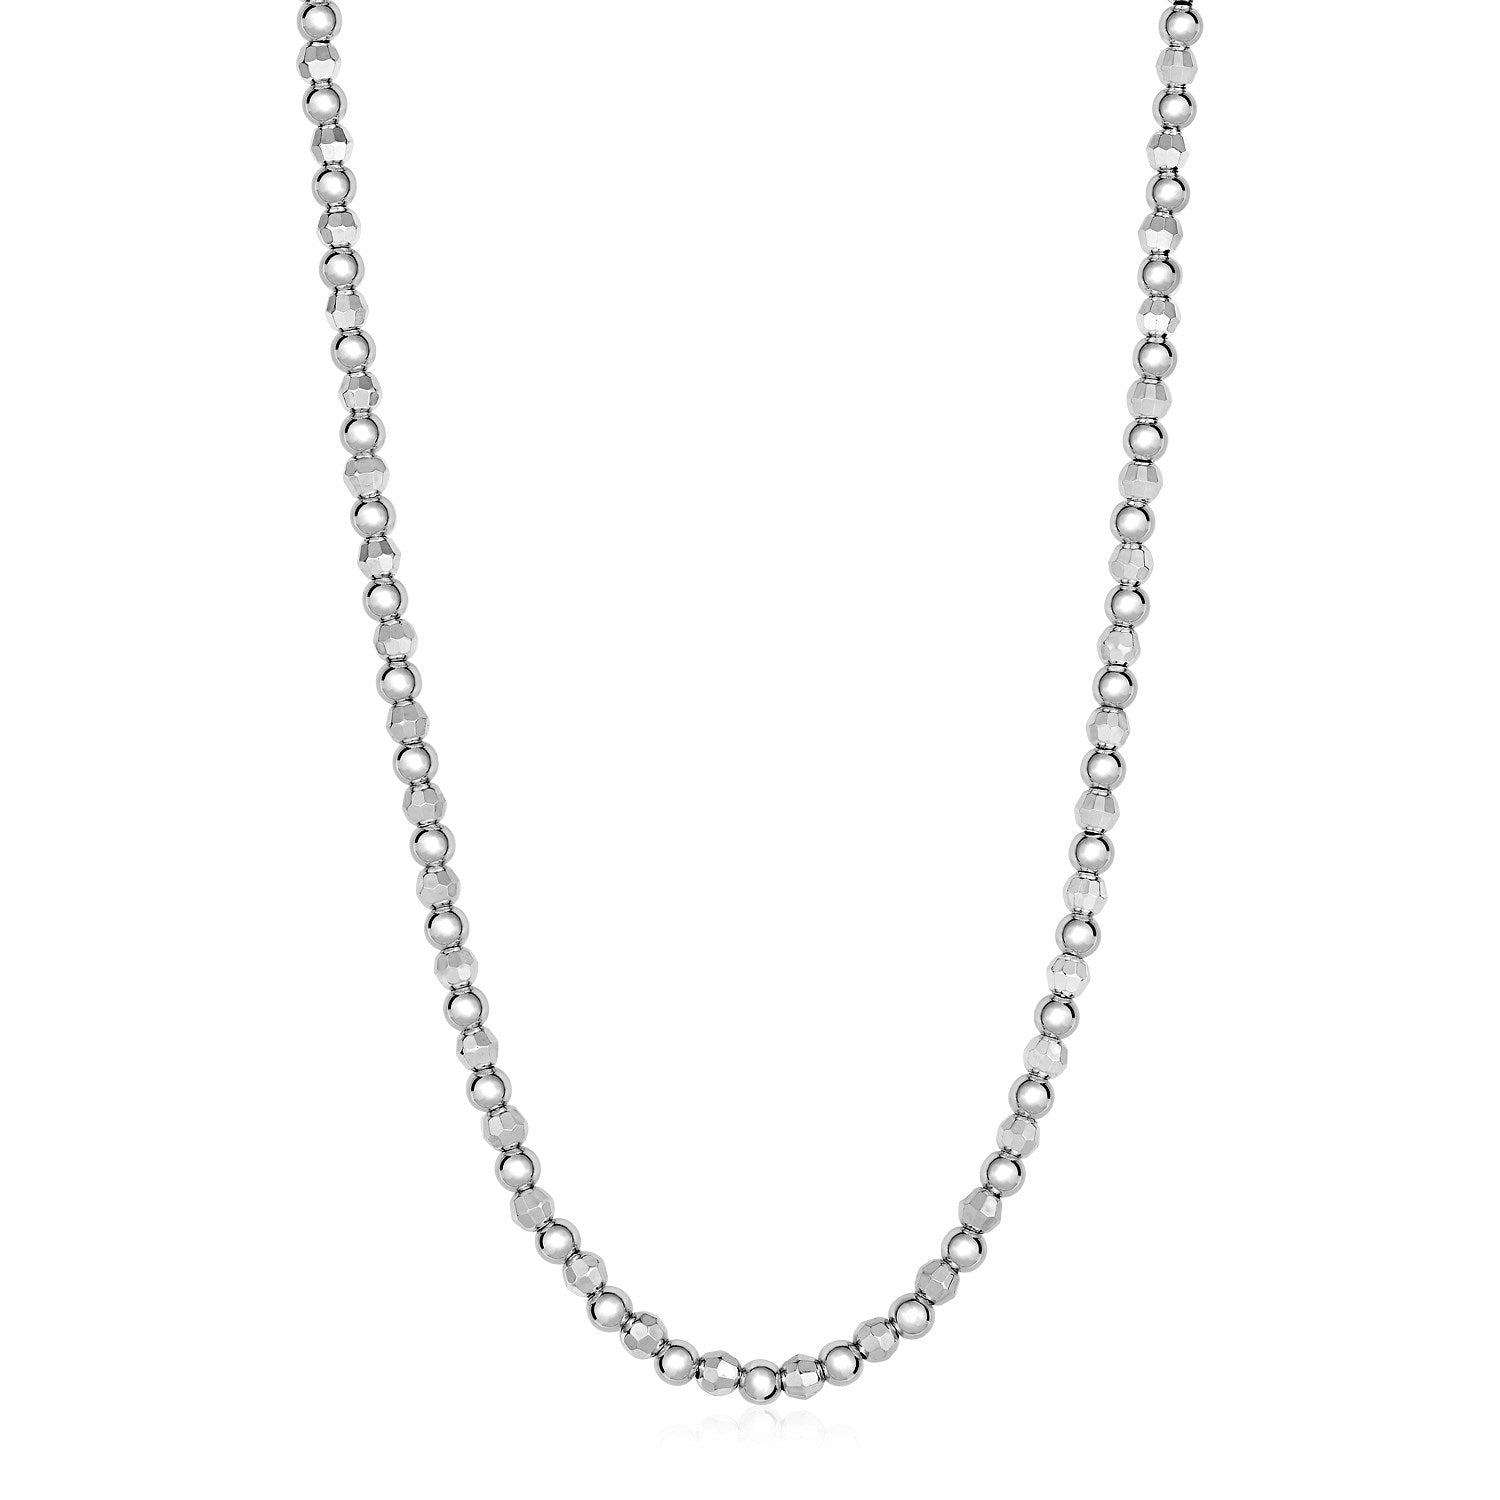 Polished and Textured Round Bead Necklace in Sterling Silver